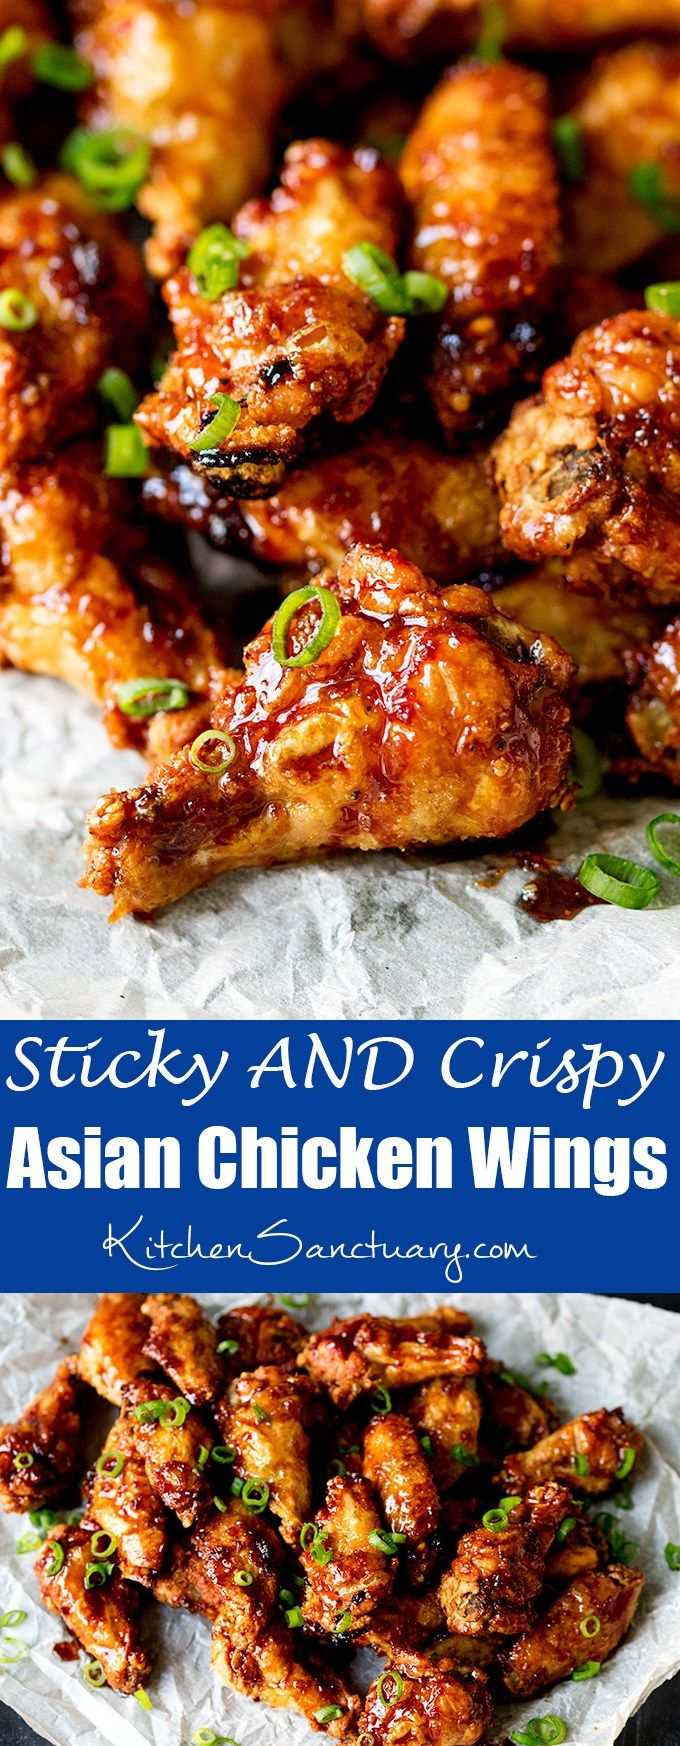 These Asian Chicken Wings are Sticky AND Crispy. The best party food ever!